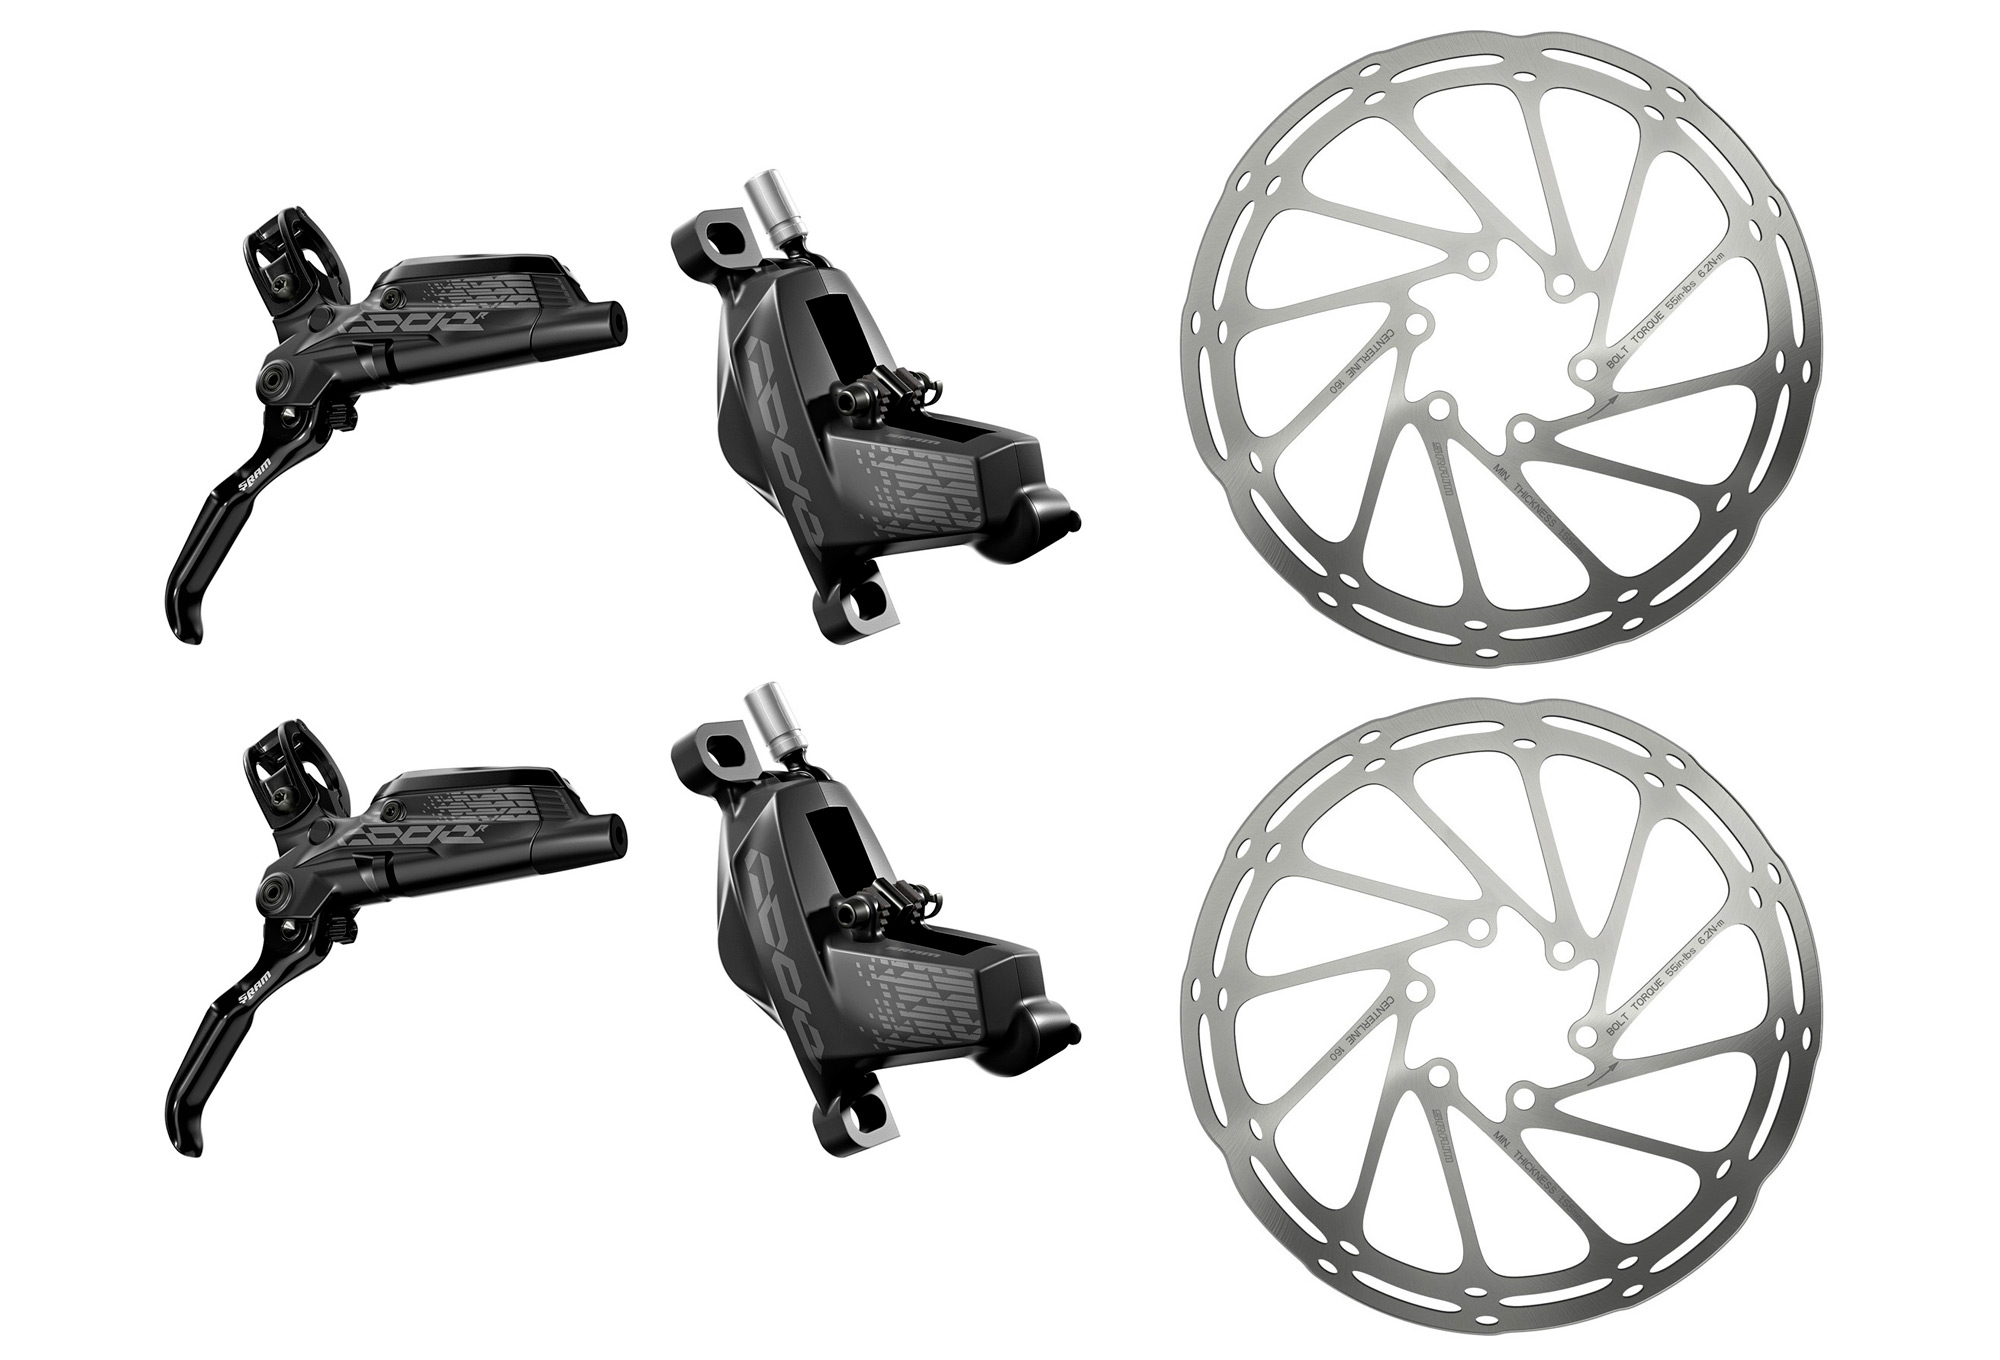 Brakeset SRAM CODE R Black with Disc Sram Centerline